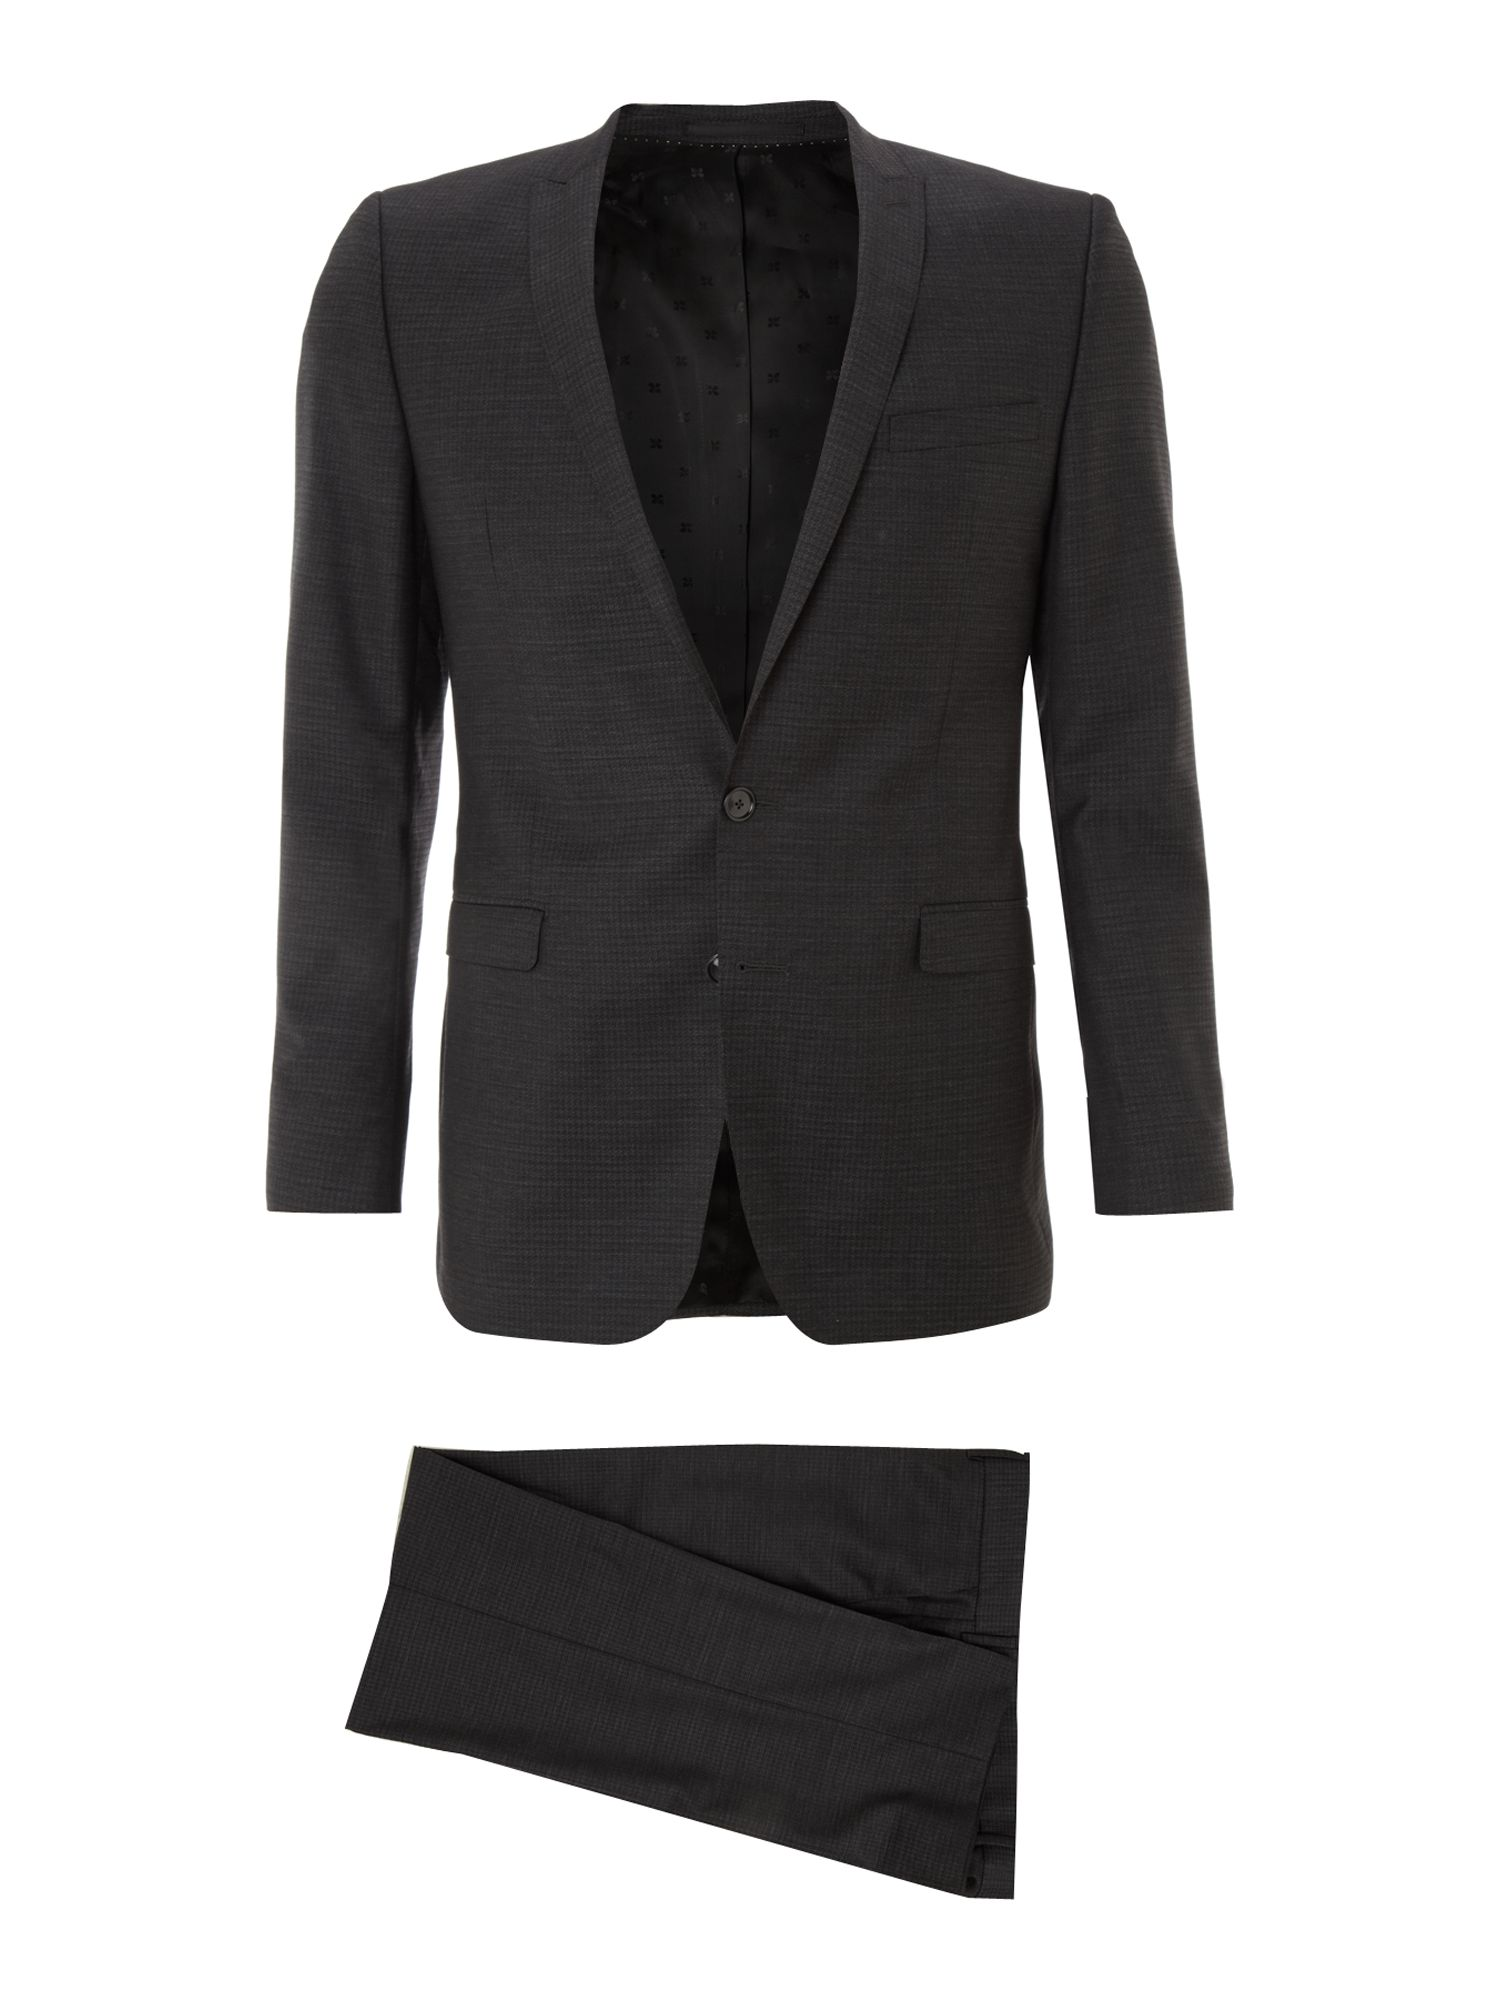 Single breasted dogstooth formal suit